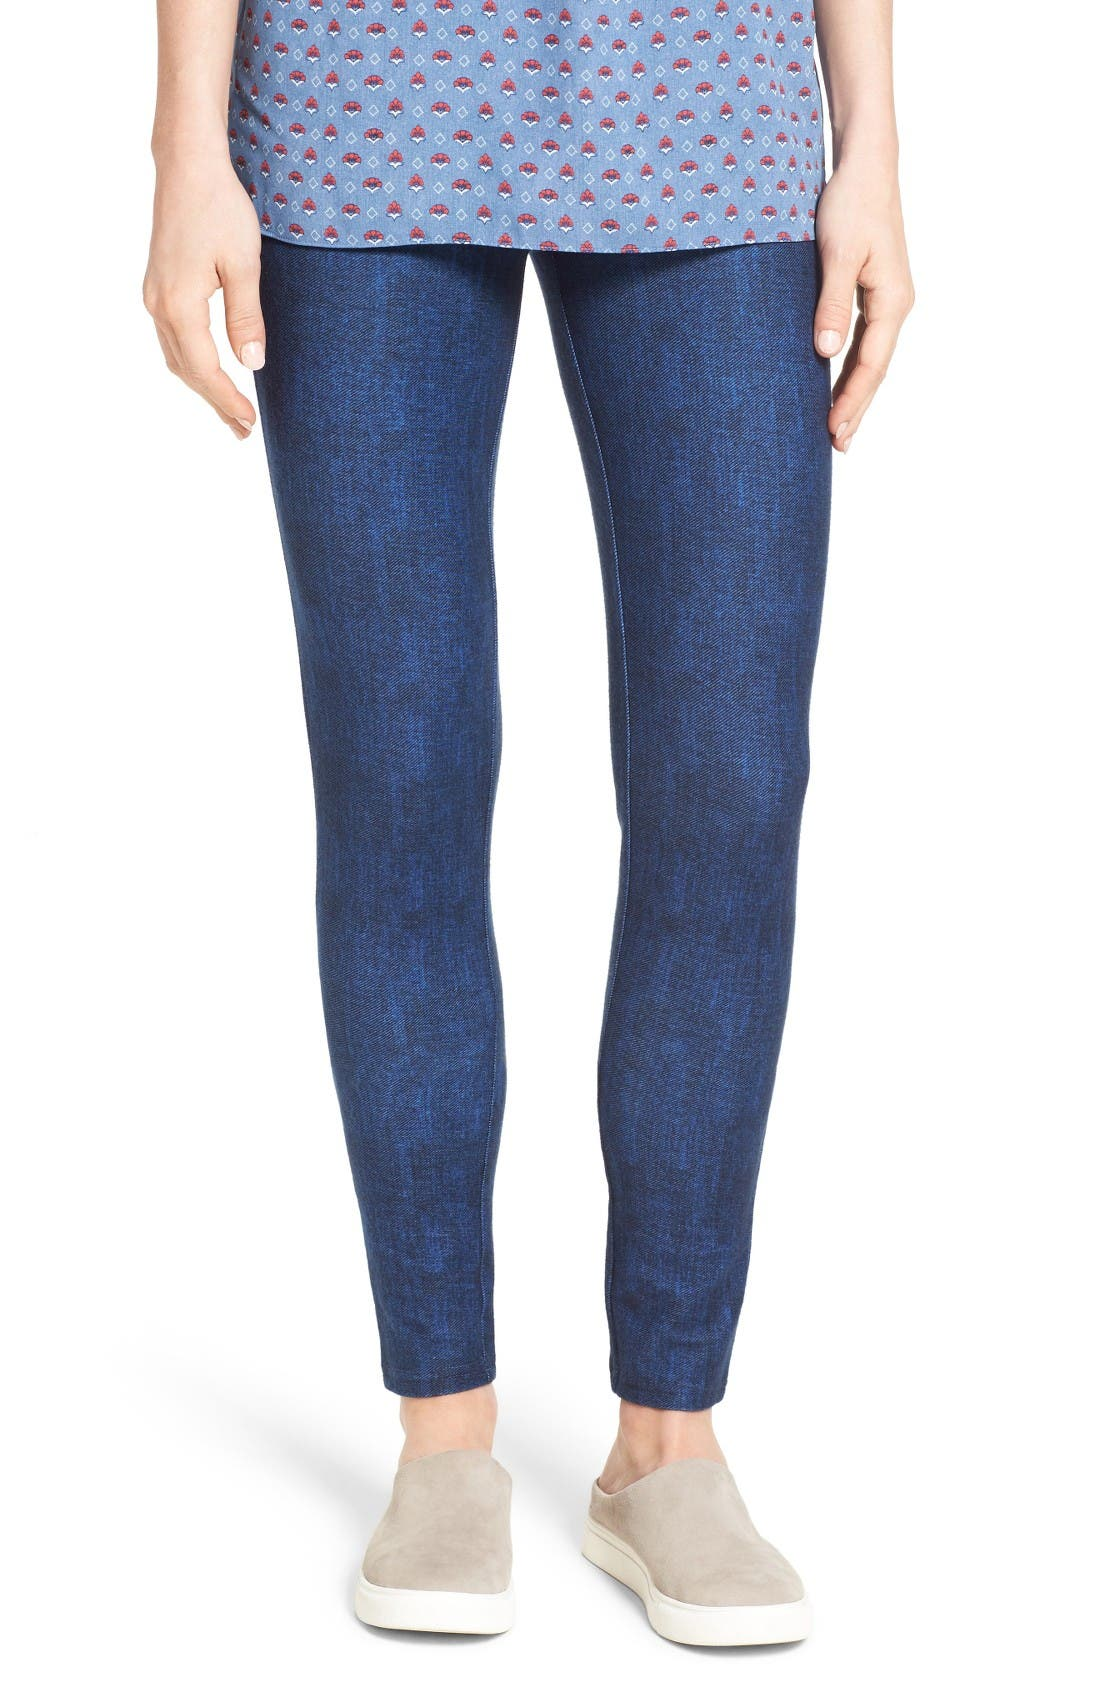 Main Image - Michael Kors Denim Leggings